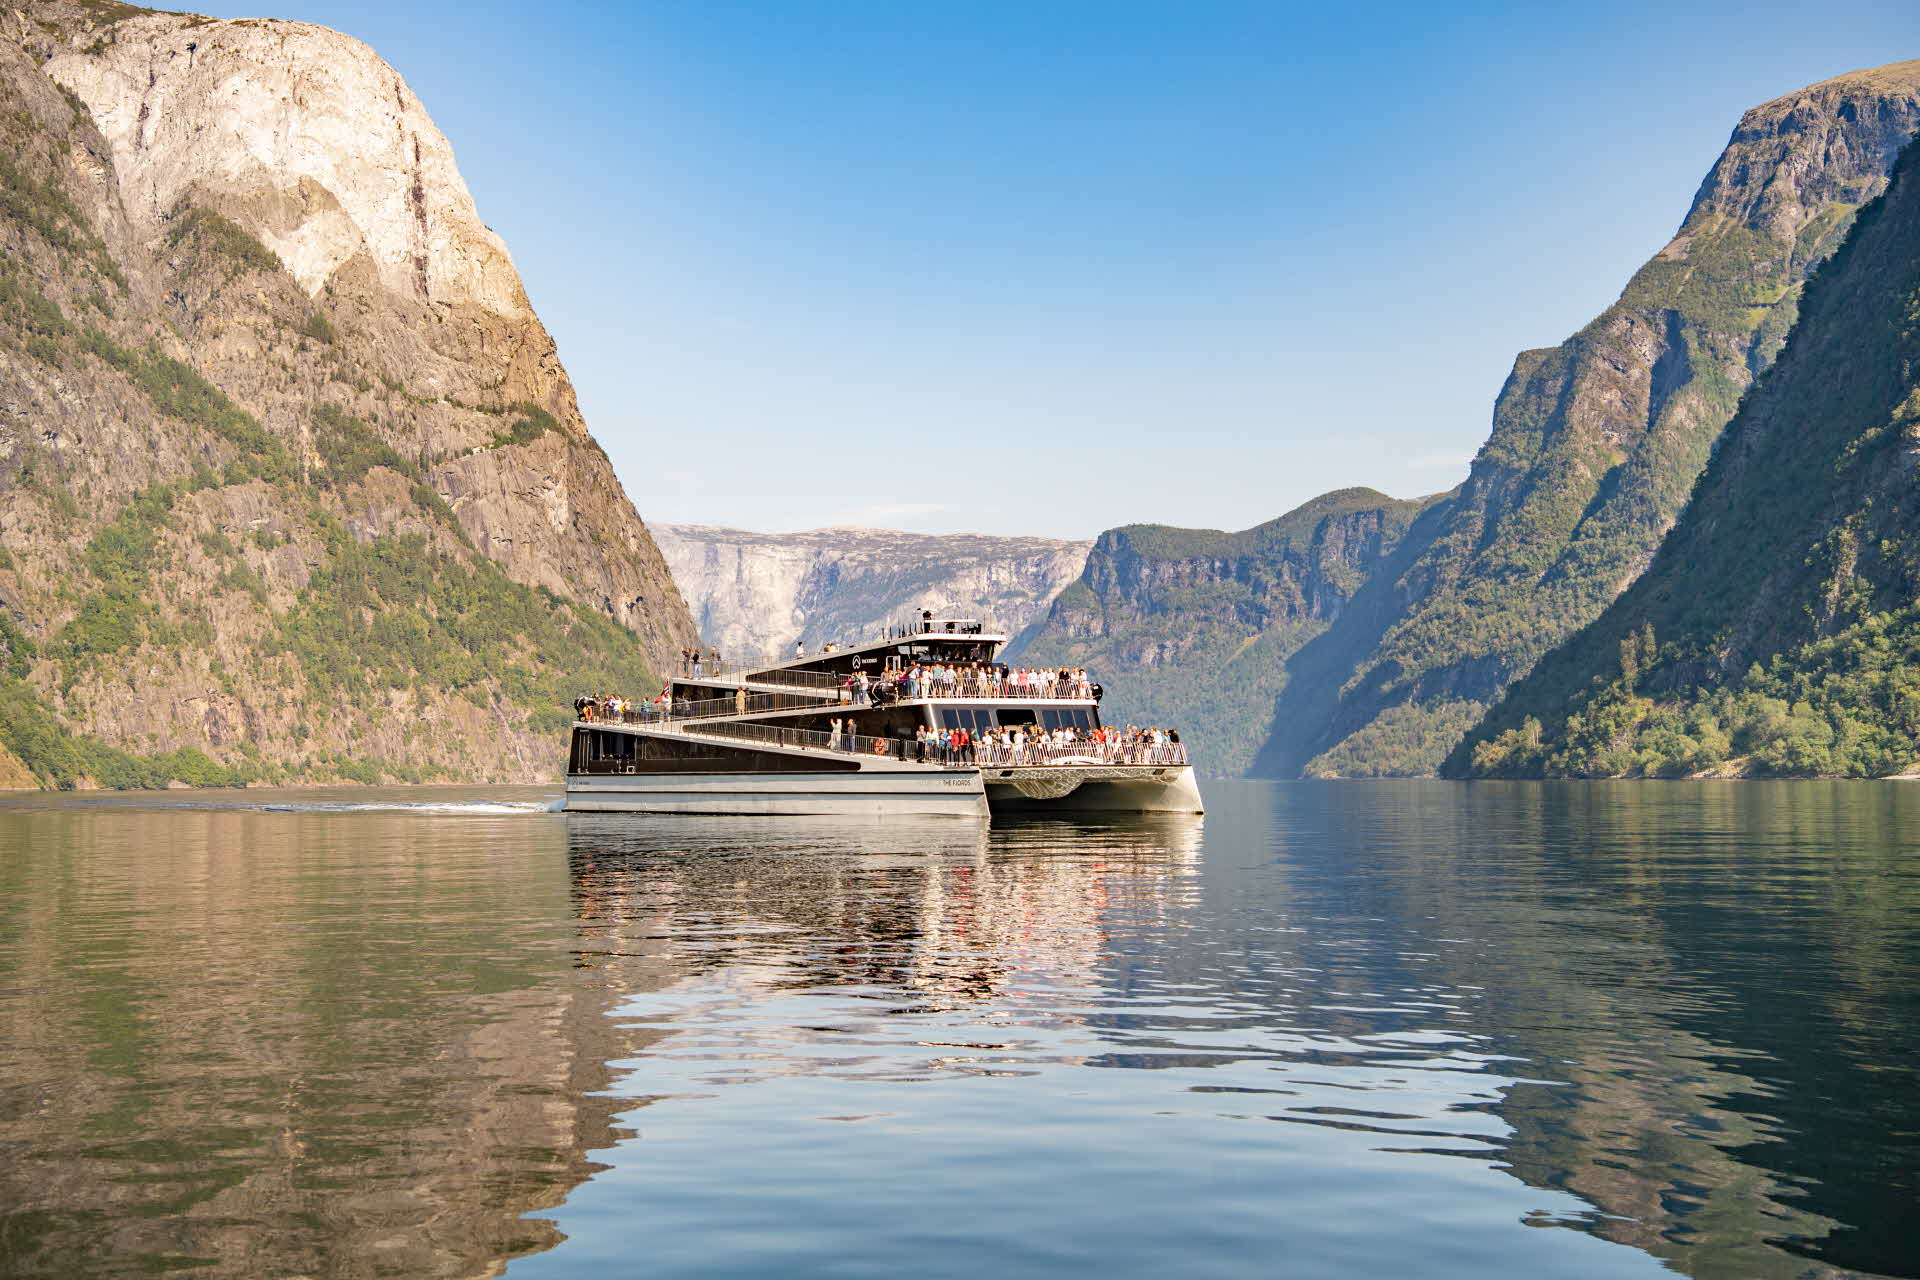 The electric boat Future of the Fjords sails silently on the Nærøyfjord